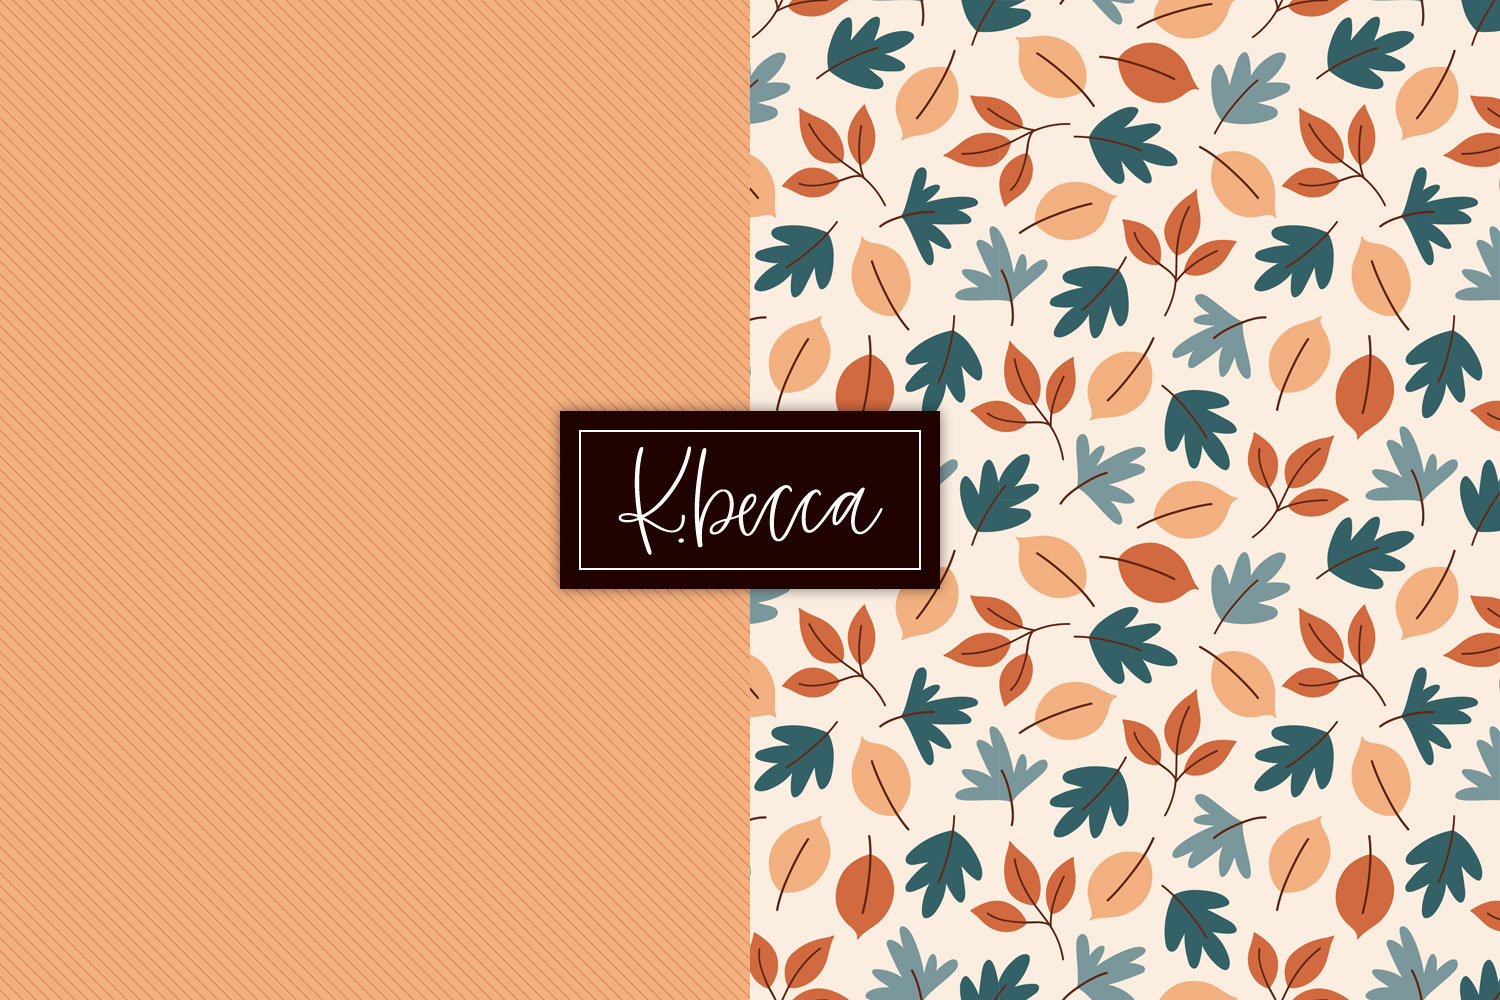 Fall Leaves & Pumpkins Background Patterns Seamless example image 6